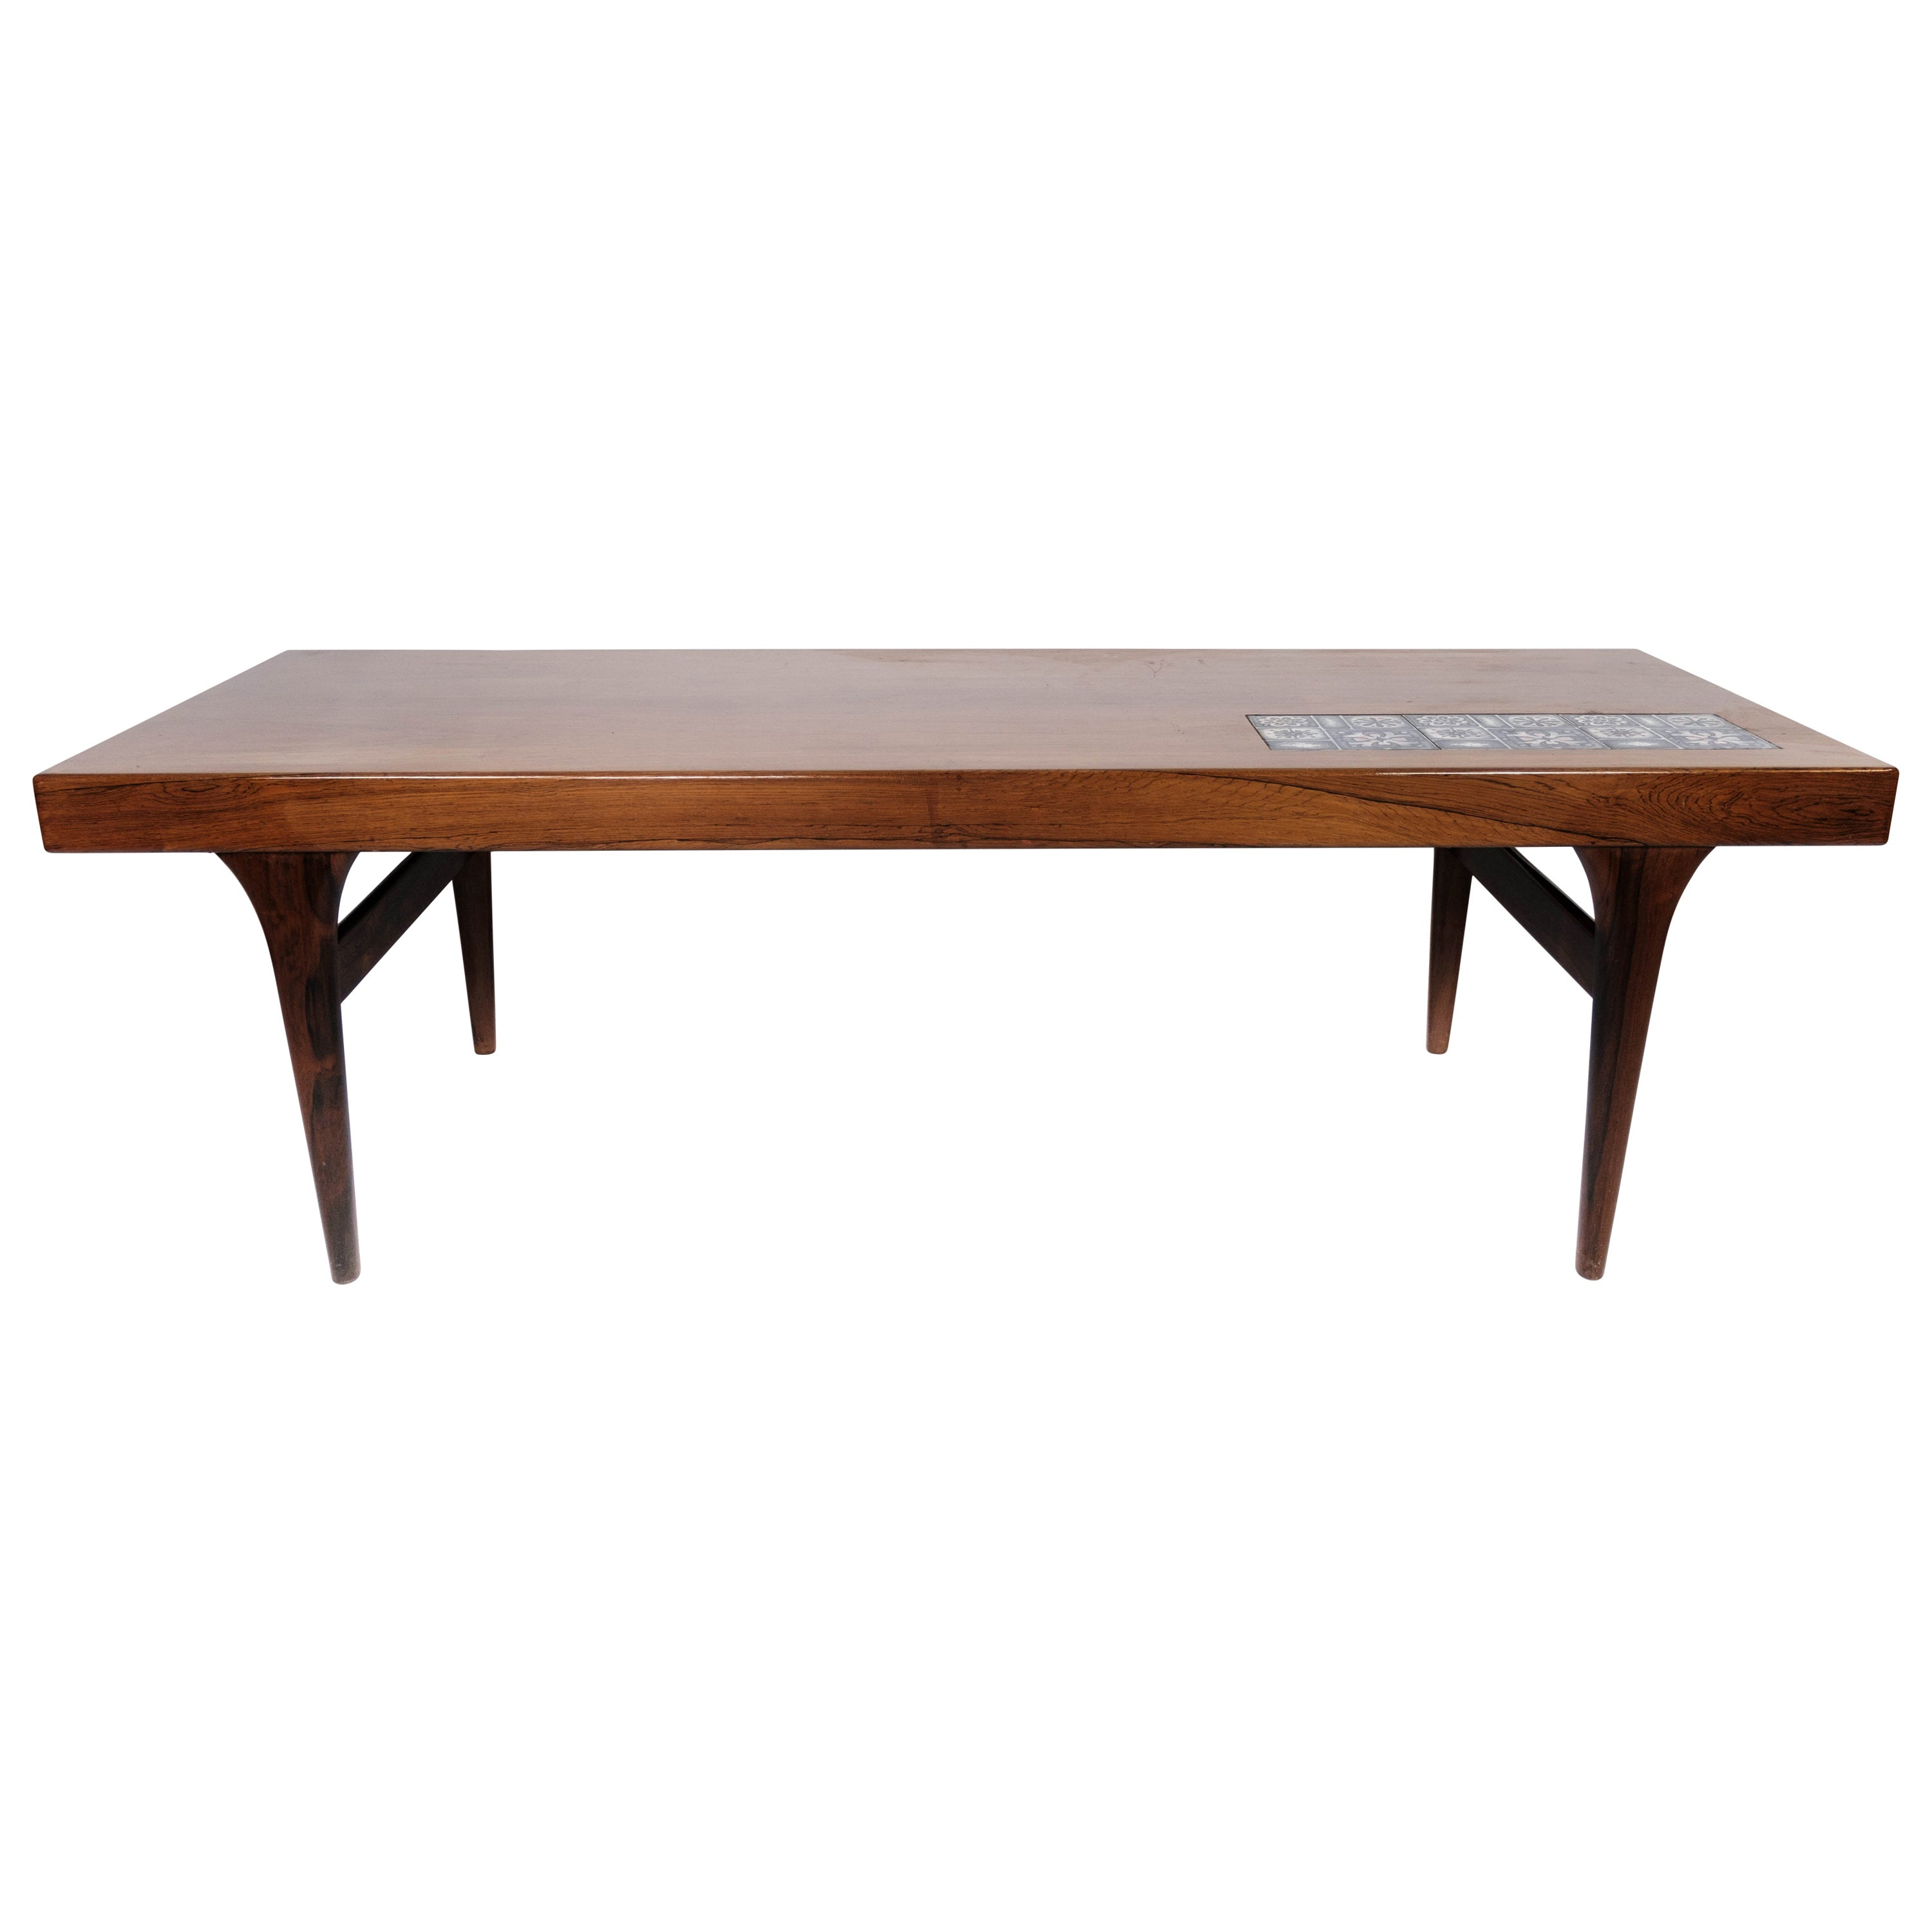 Coffee Table in Rosewood with Blue Tiles Designed by Johannes Andersen, 1960s